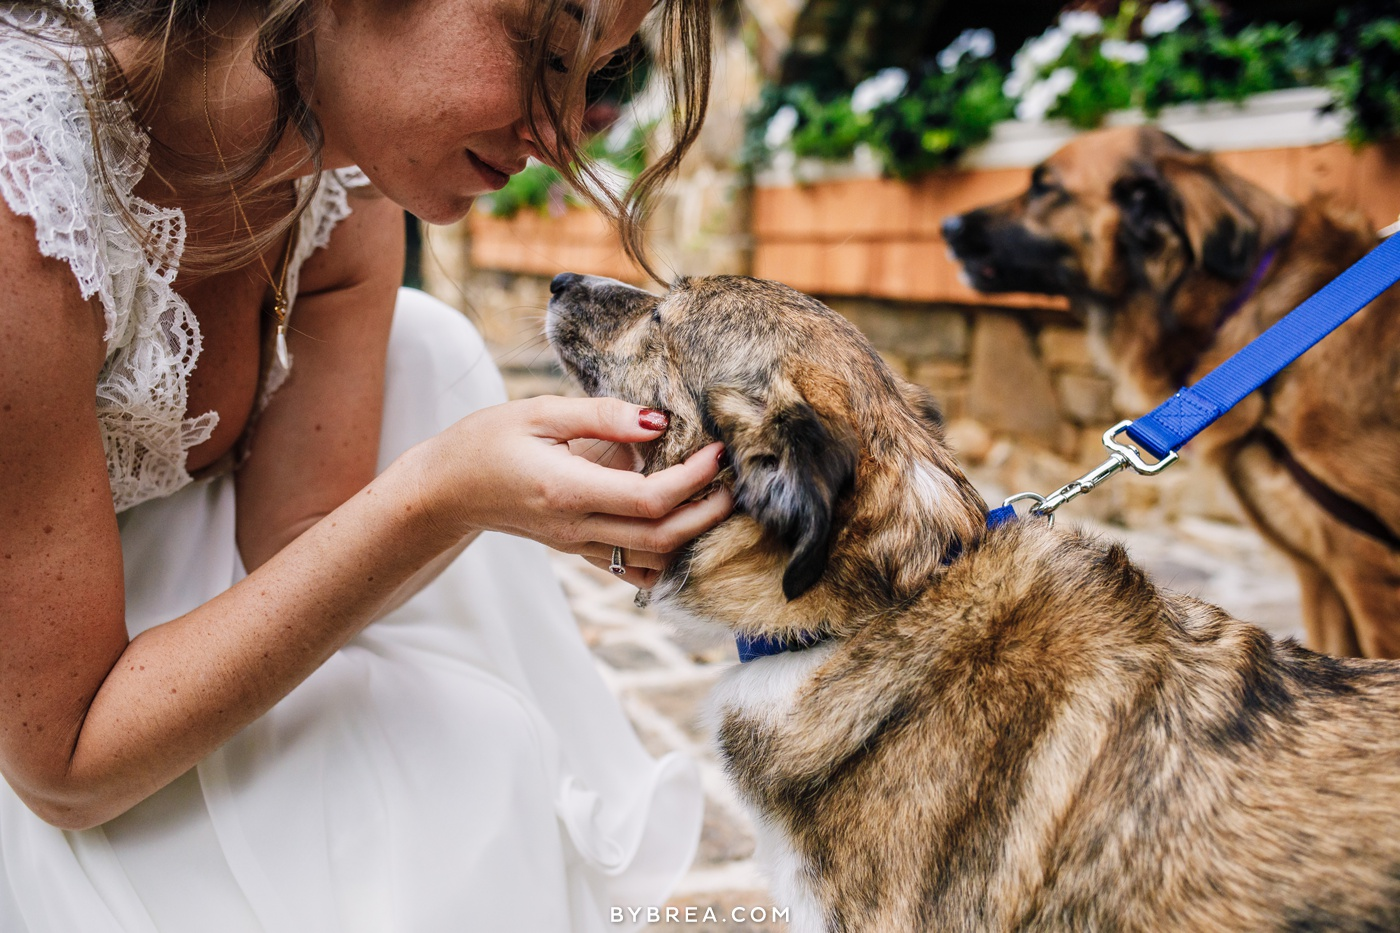 Gabby loving on her dog Jessie on her wedding day